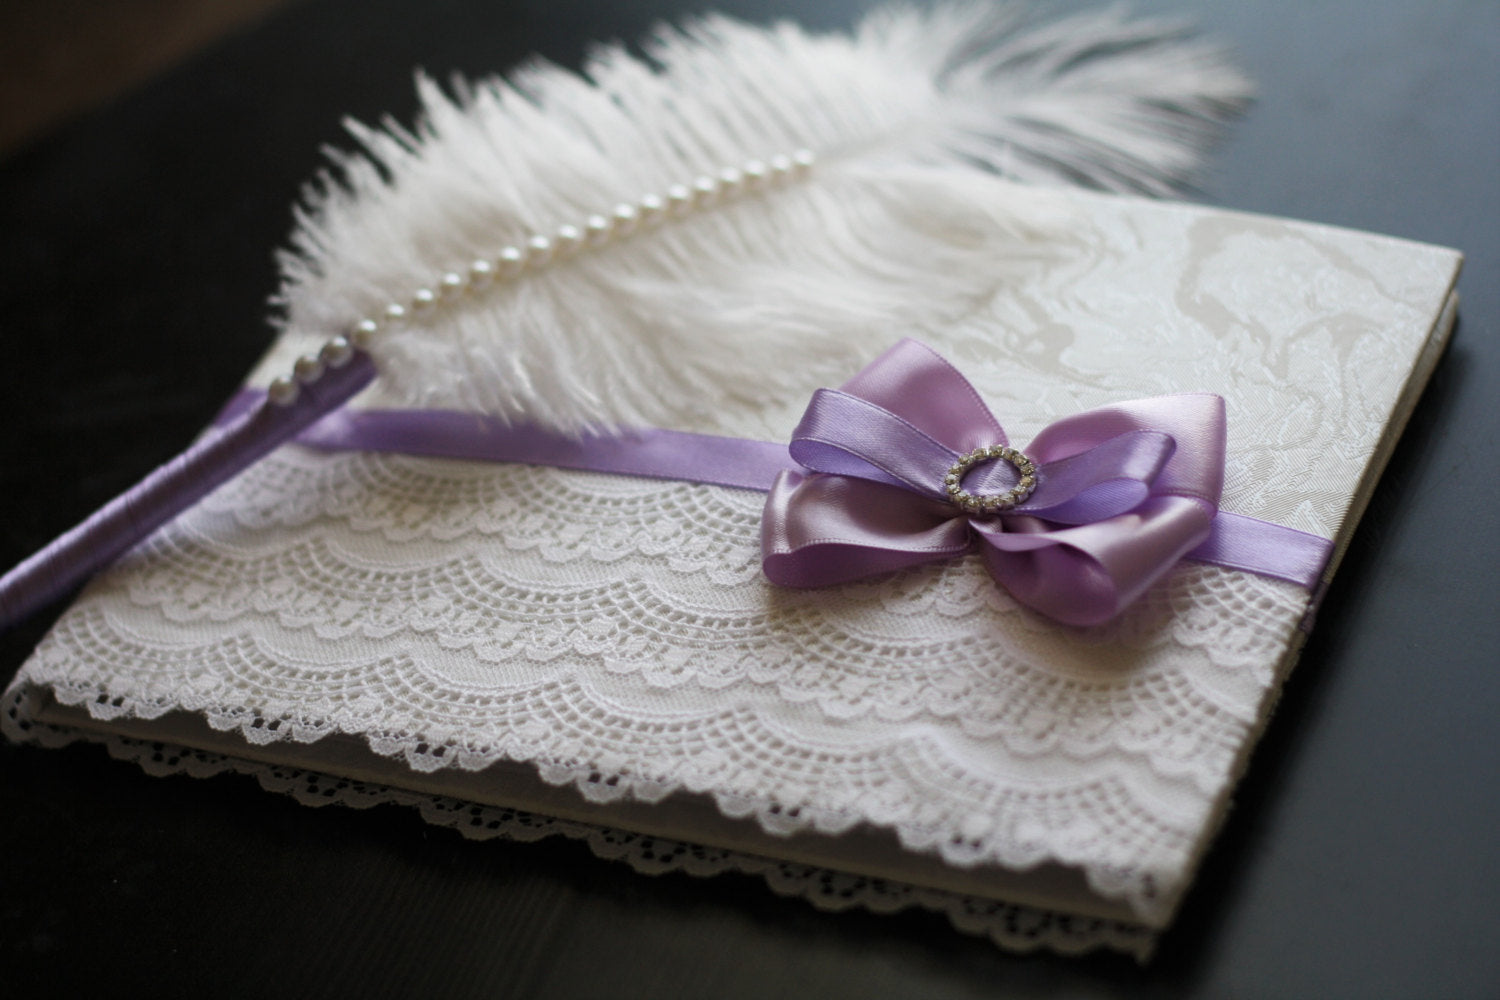 purple white signin book and ostrich feather violet pen wedding